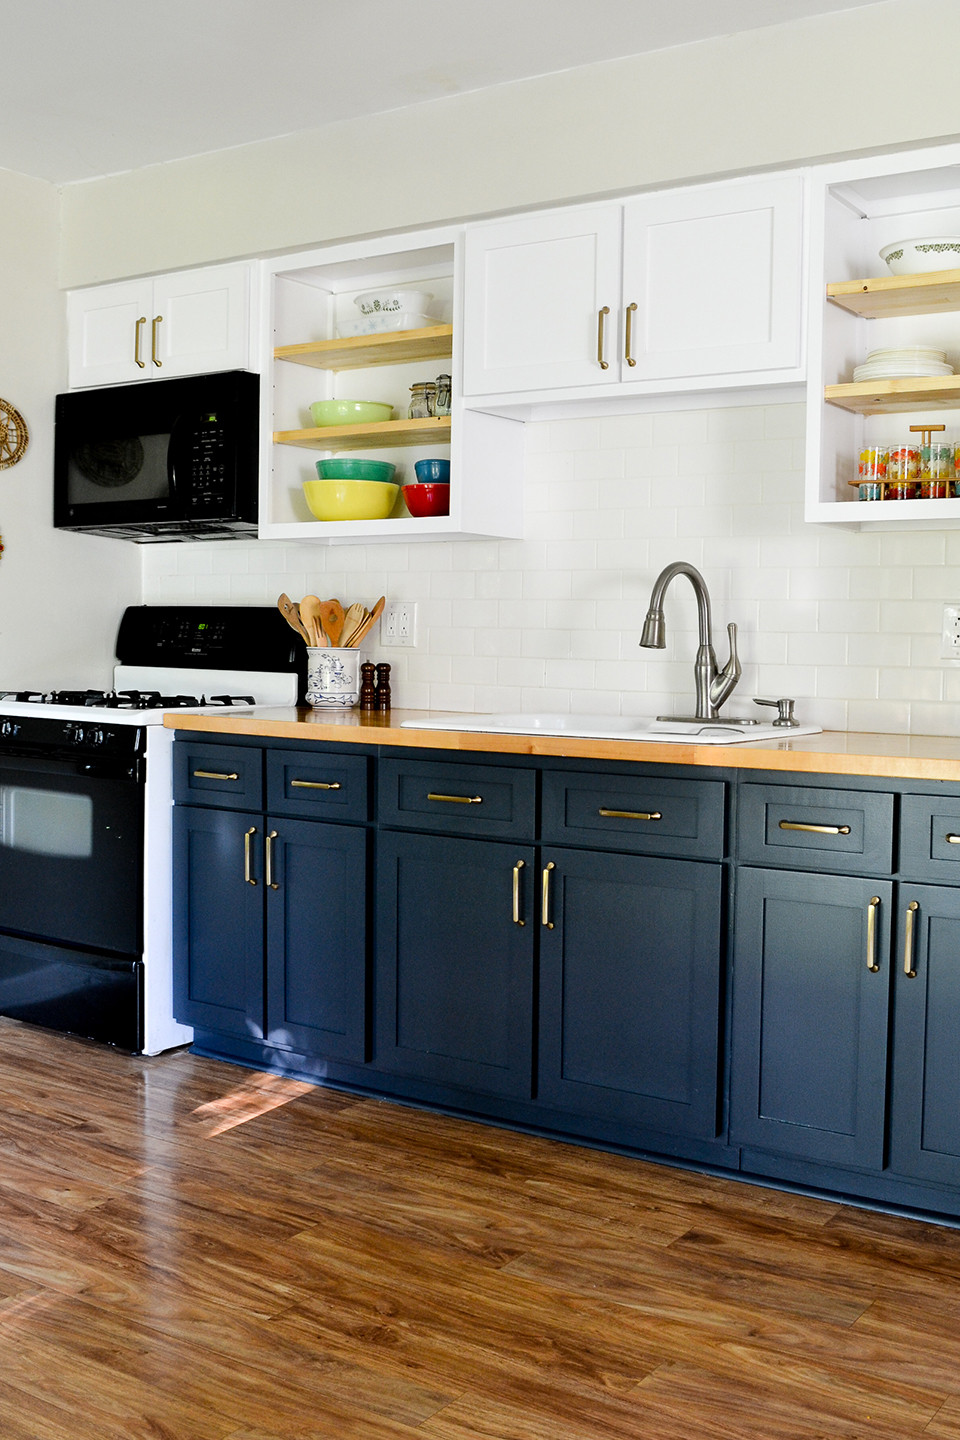 Kitchen Remodeling Budgets  Kitchen Remodel on a Bud 5 Low Cost Ideas to Help You